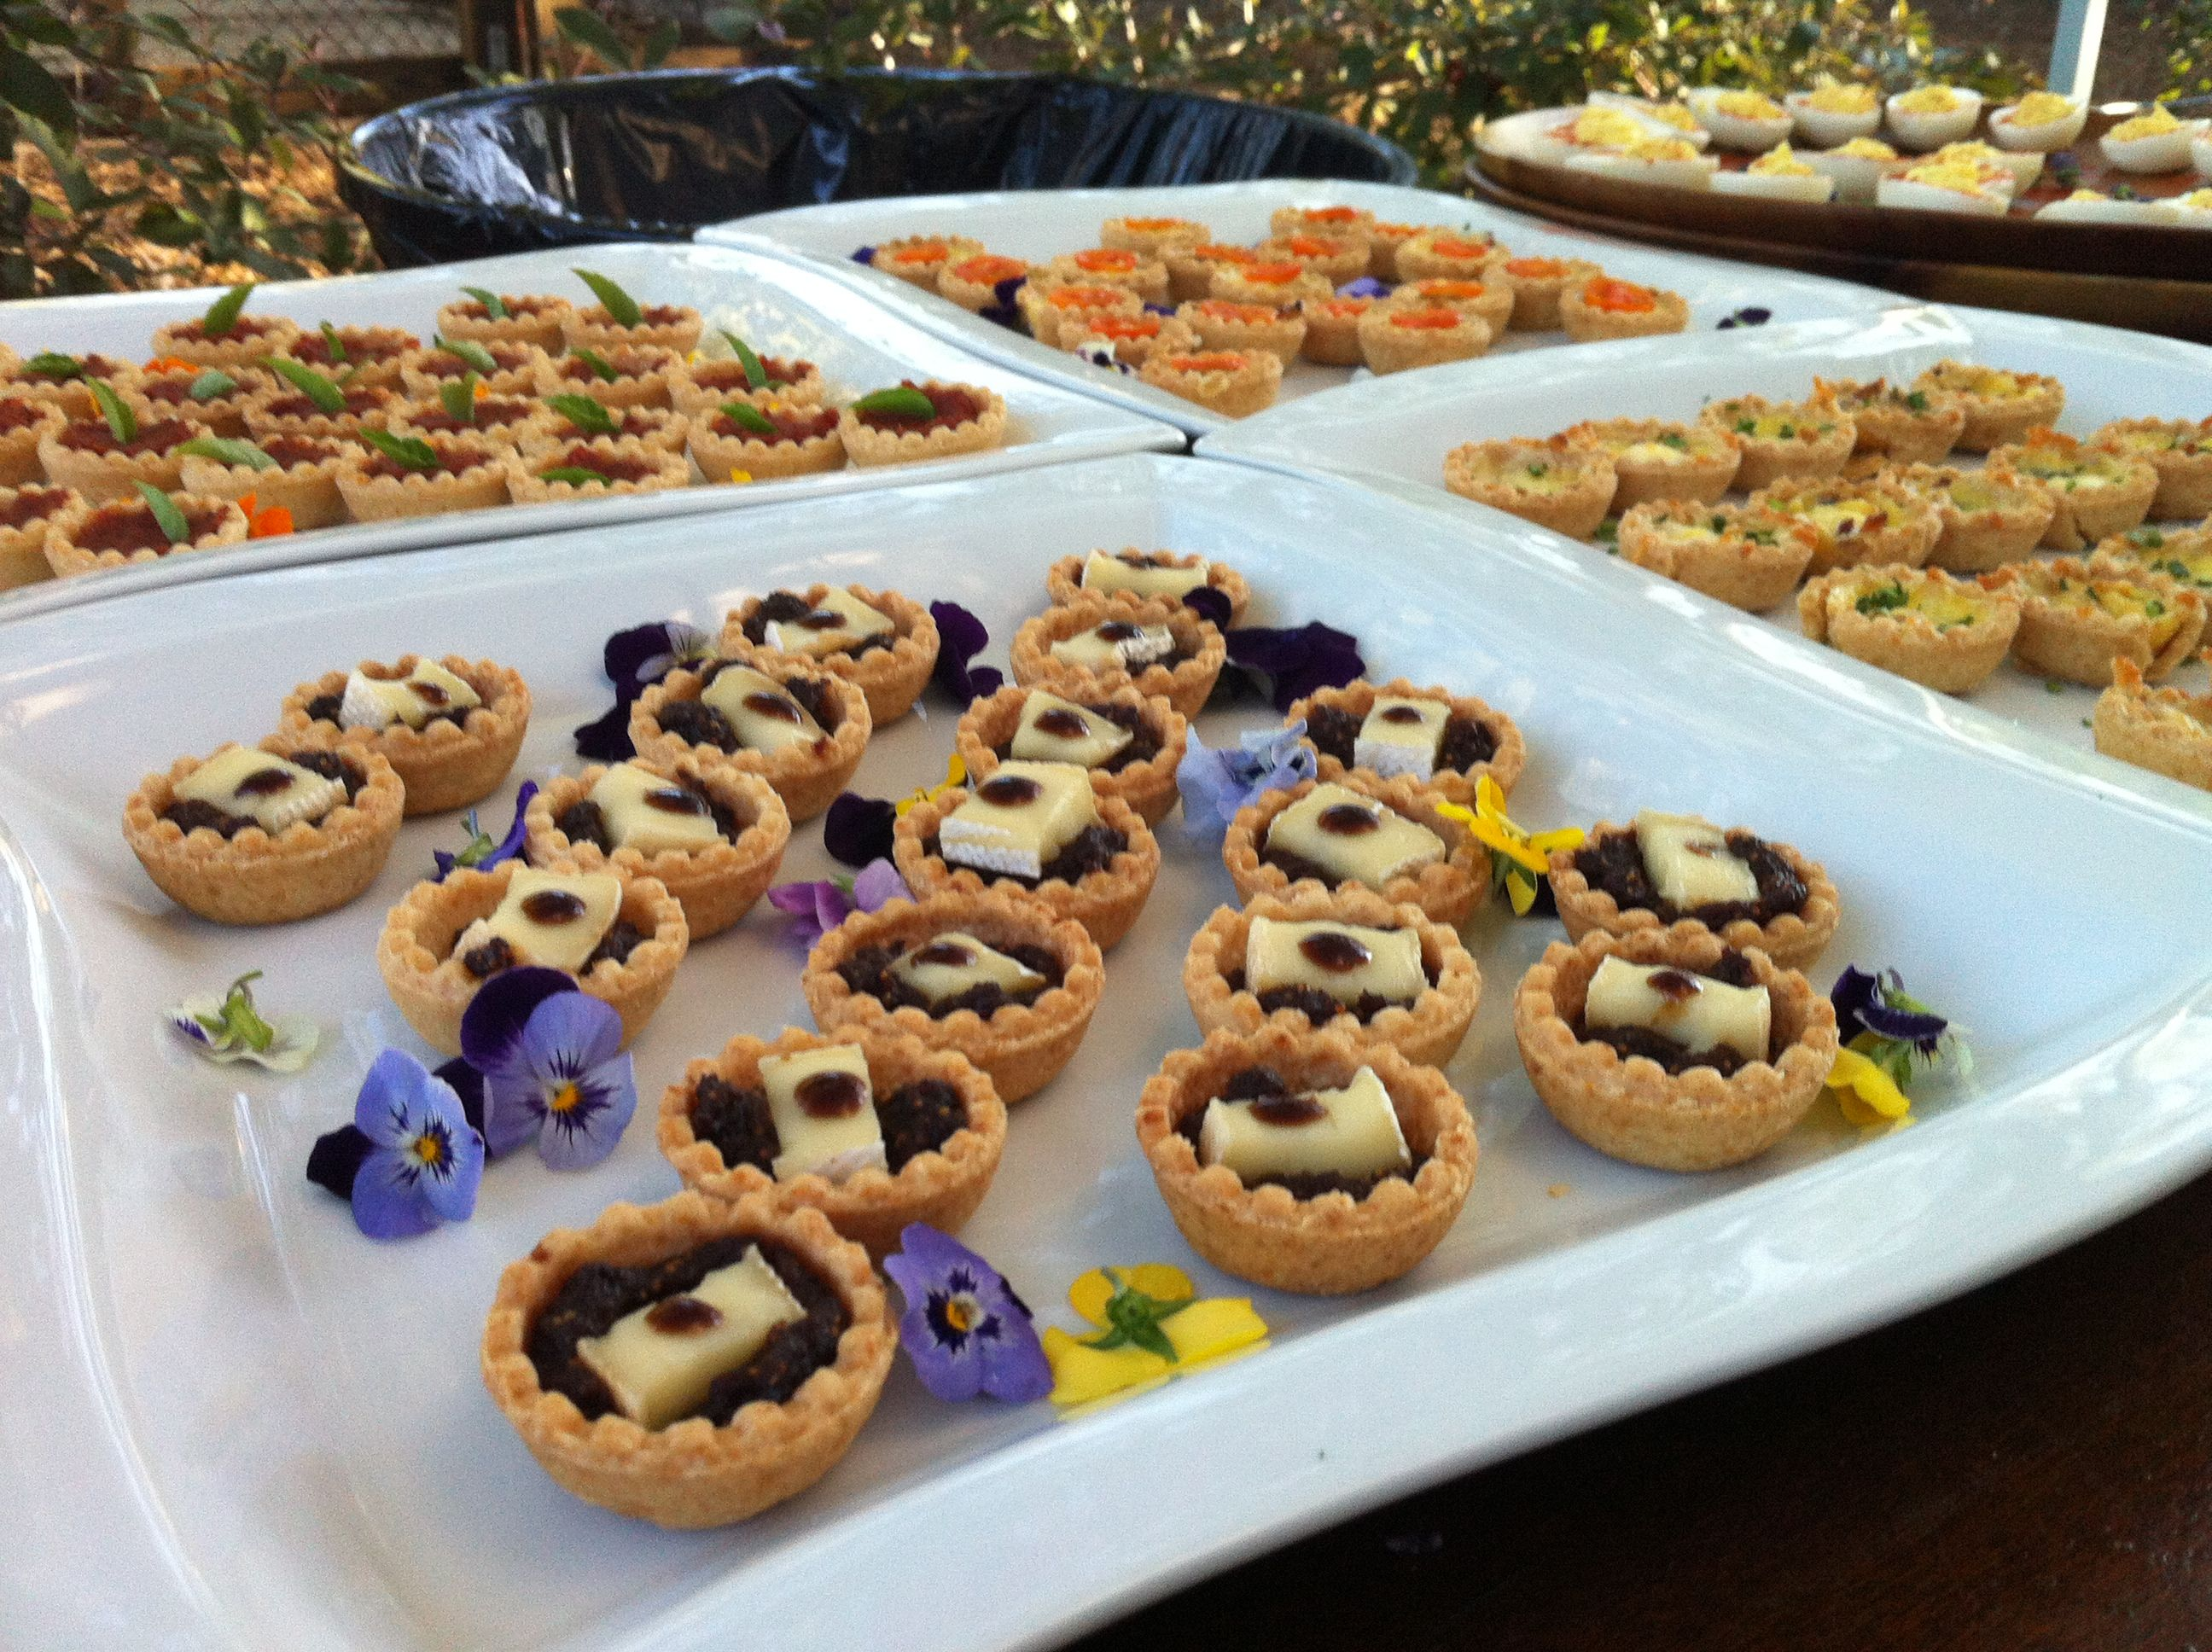 Pin by Kelly R. on LET'S PARTY: APPETIZER | Pinterest